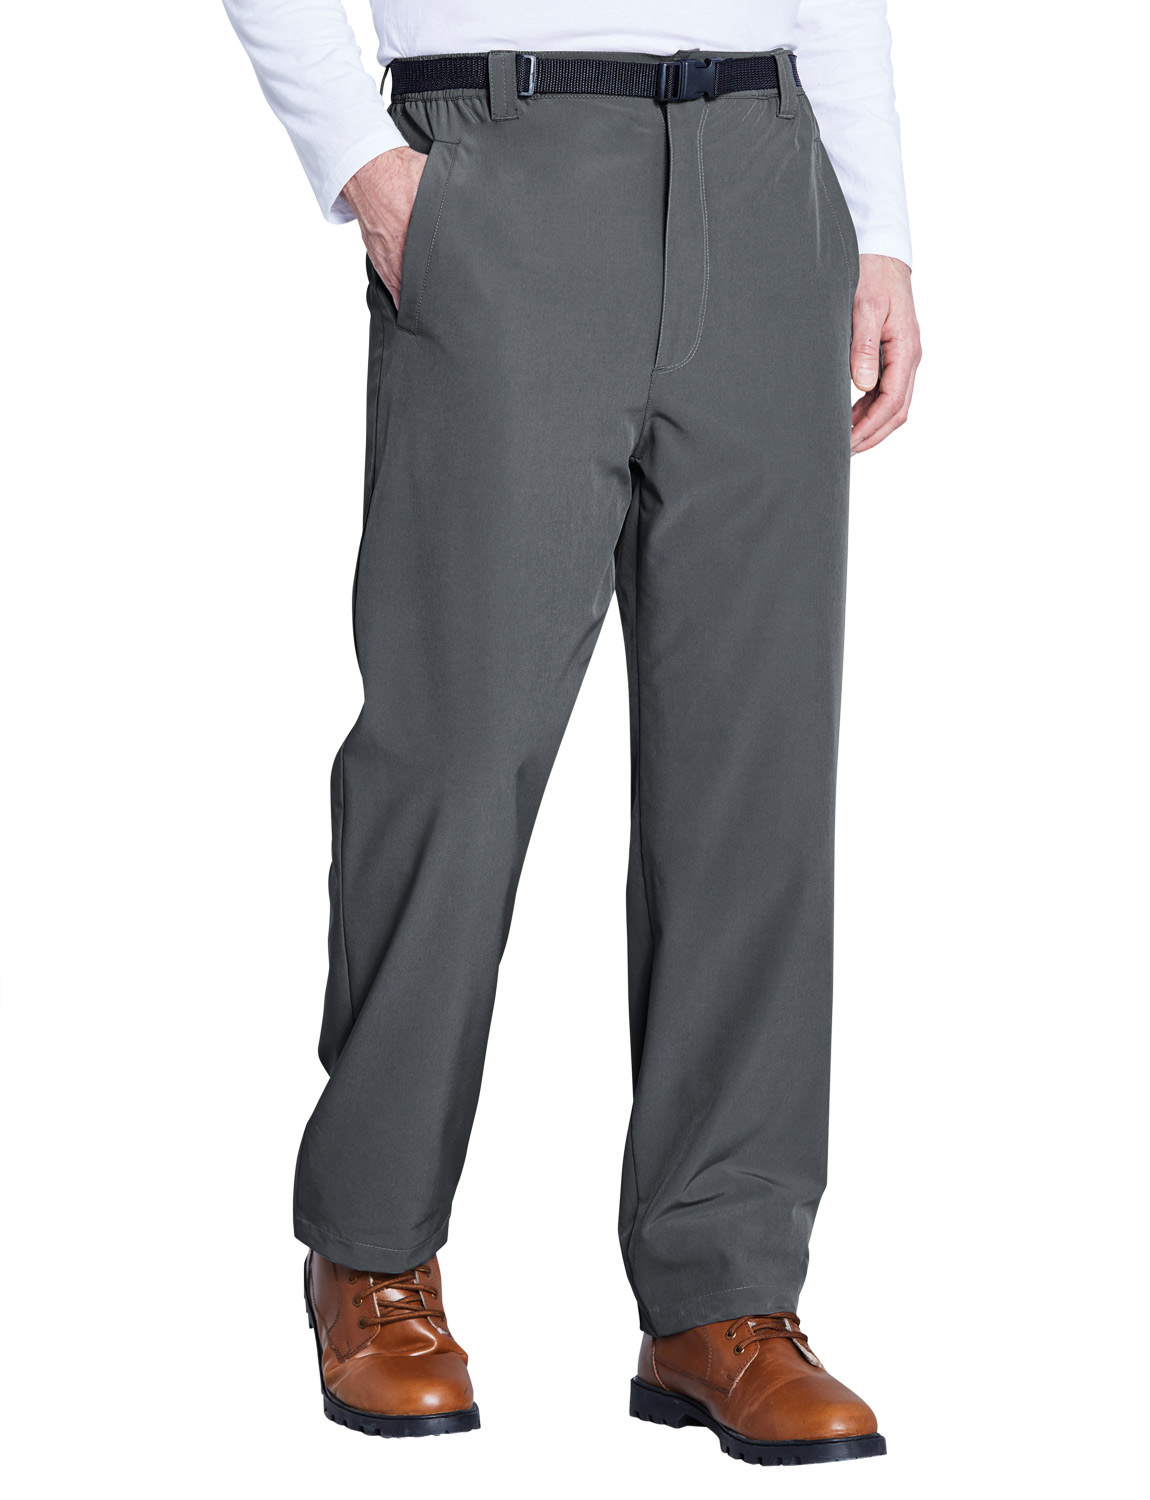 Resistente-all-039-acqua-Anti-pillola-Foderato-in-Pile-2-WAY-STRETCH-PANTALONI